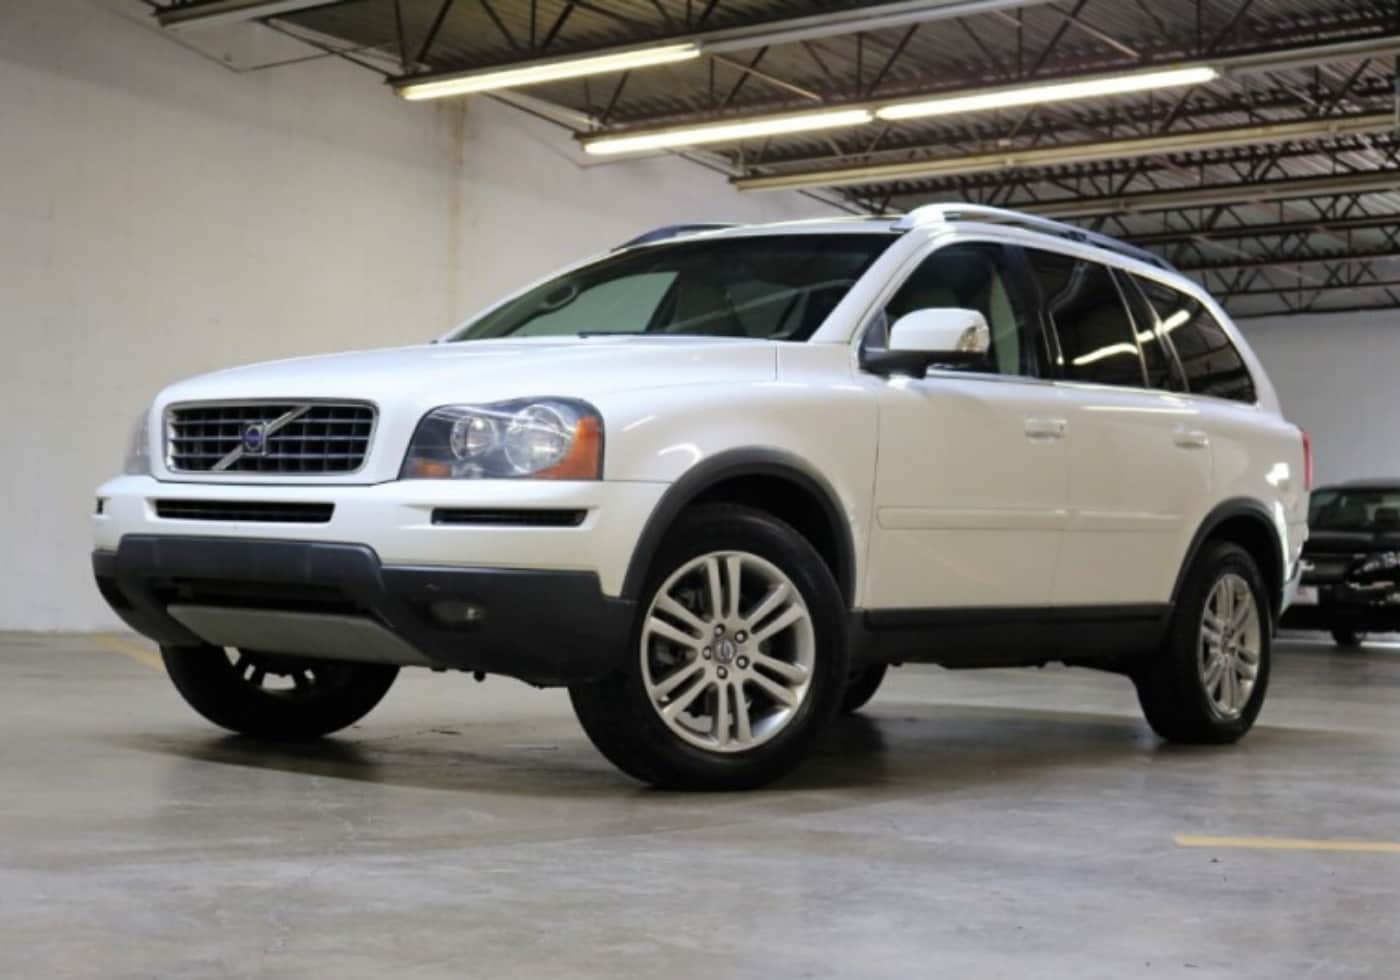 Used White Volvo XC90 SUV pulling into a parking spot inside an enclosed parking garage